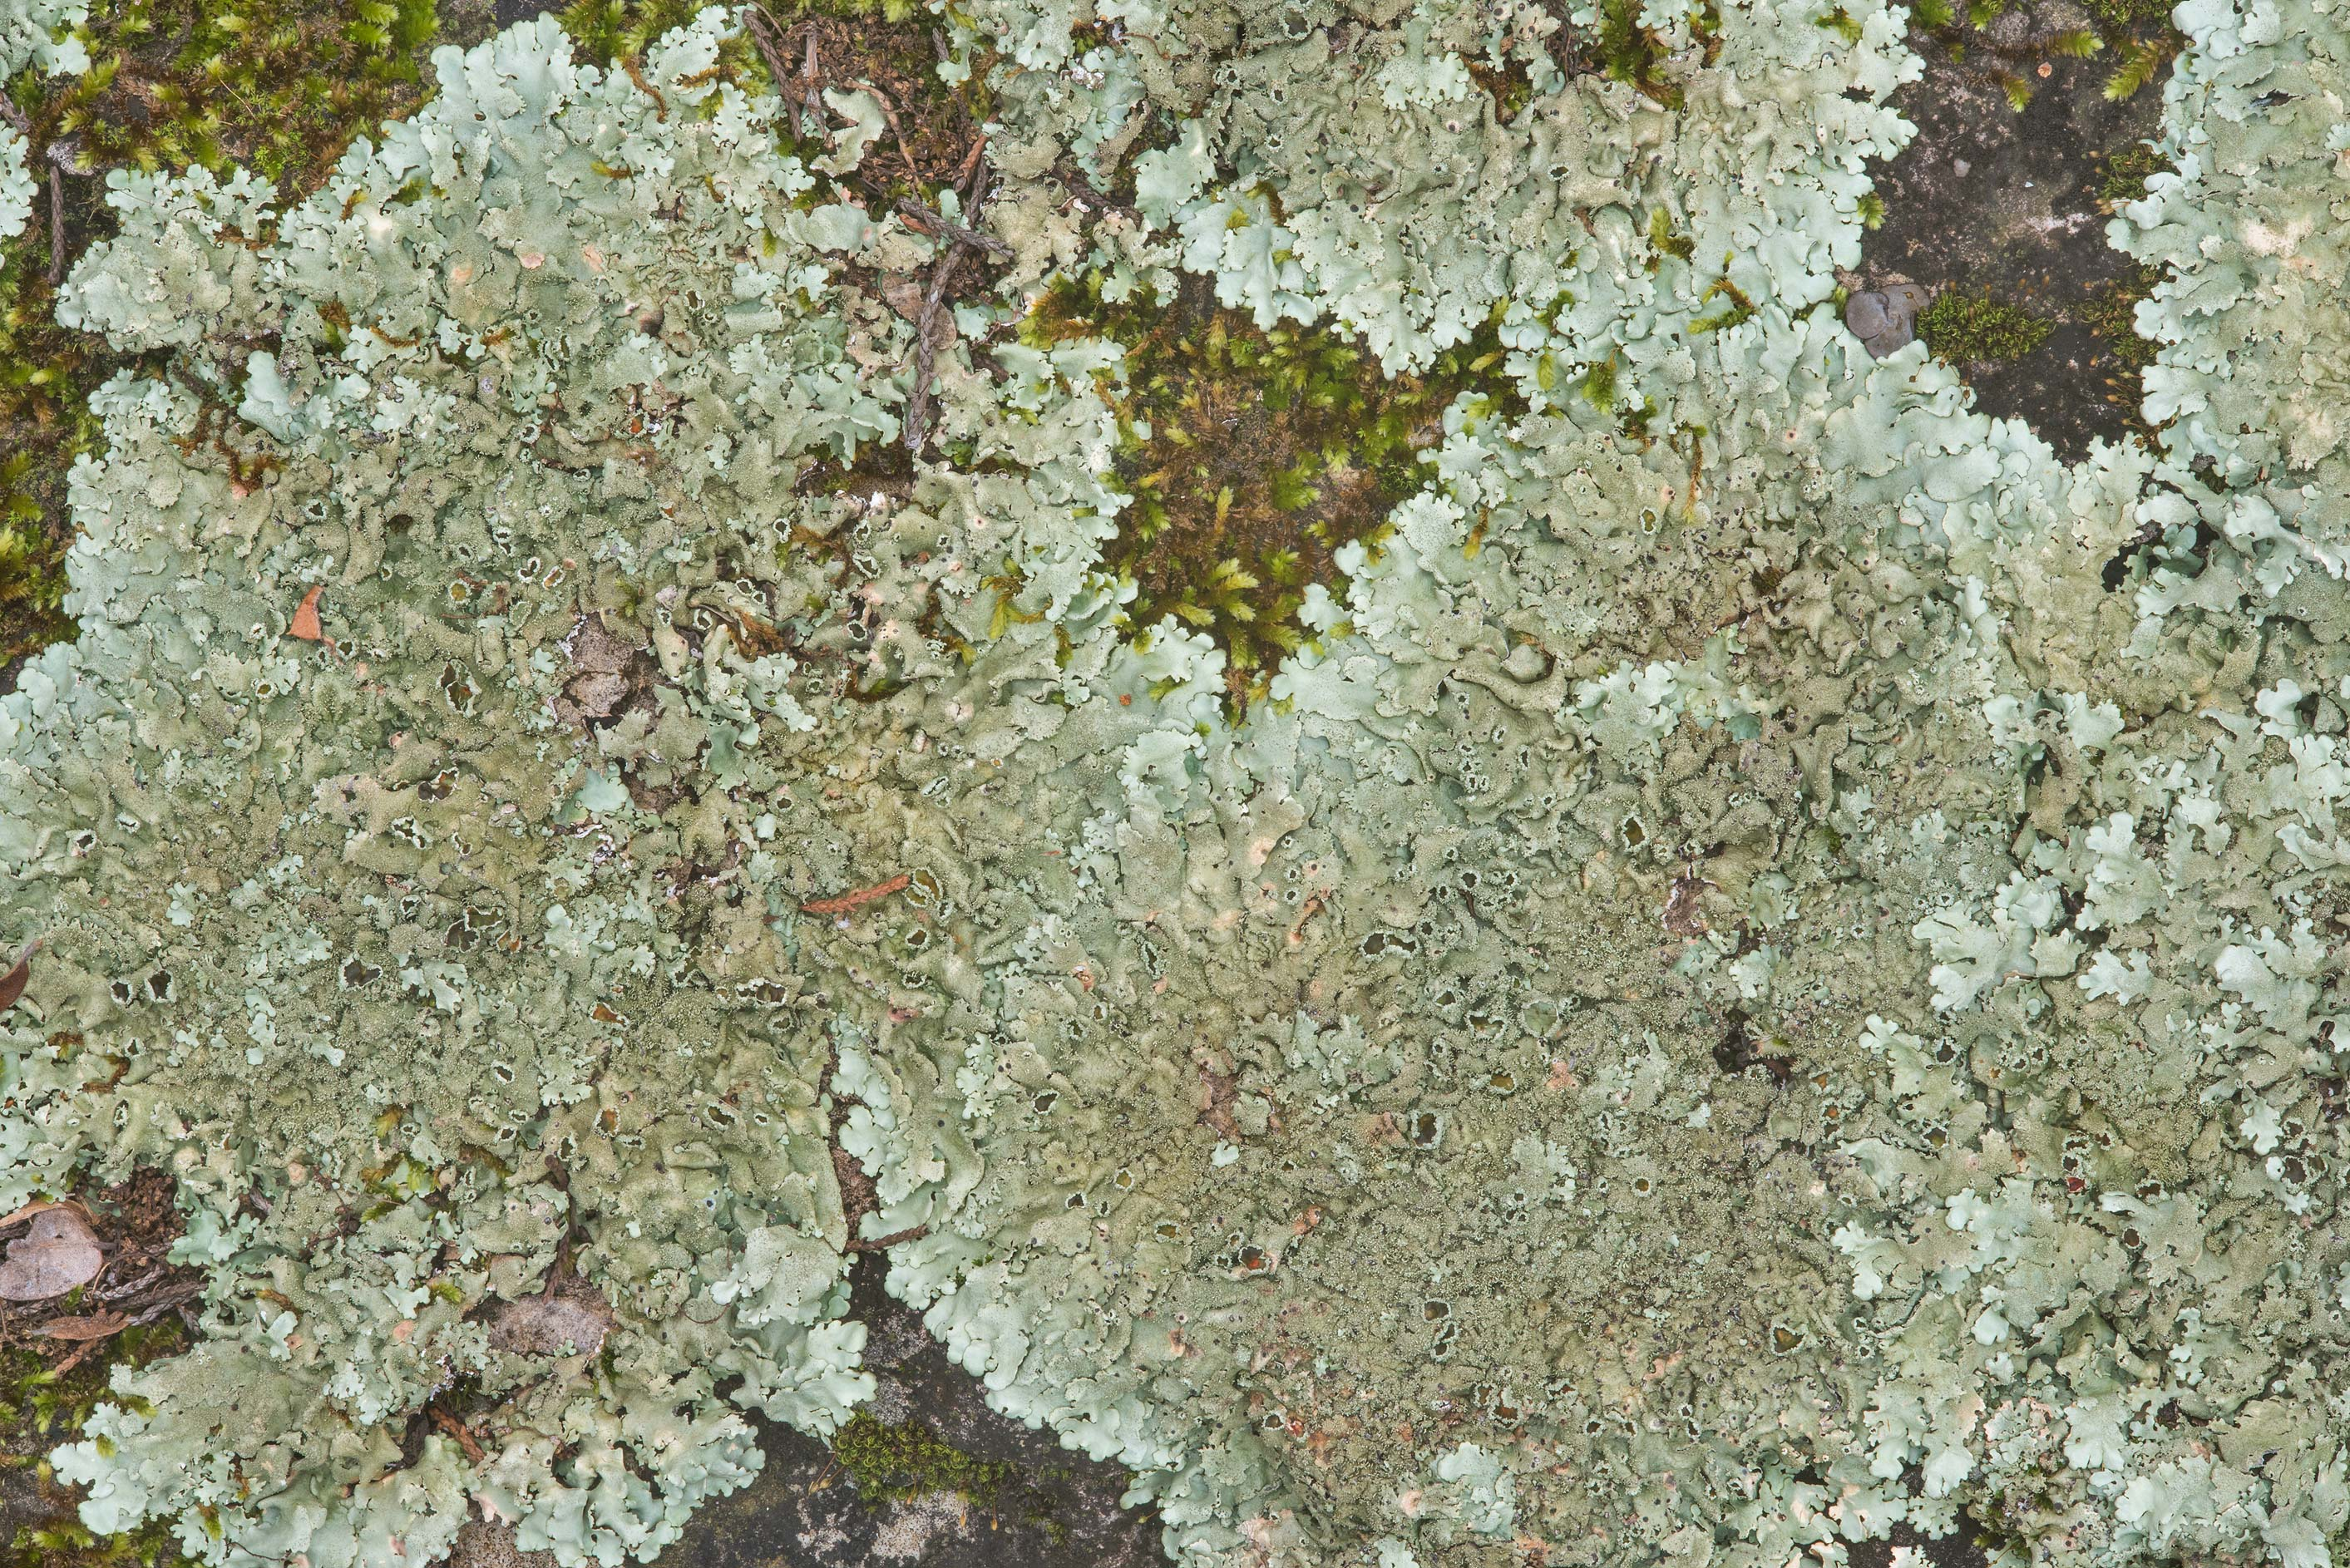 Rock shield lichen (Xanthoparmelia) on limestone...Falls State Park. Johnson City, Texas